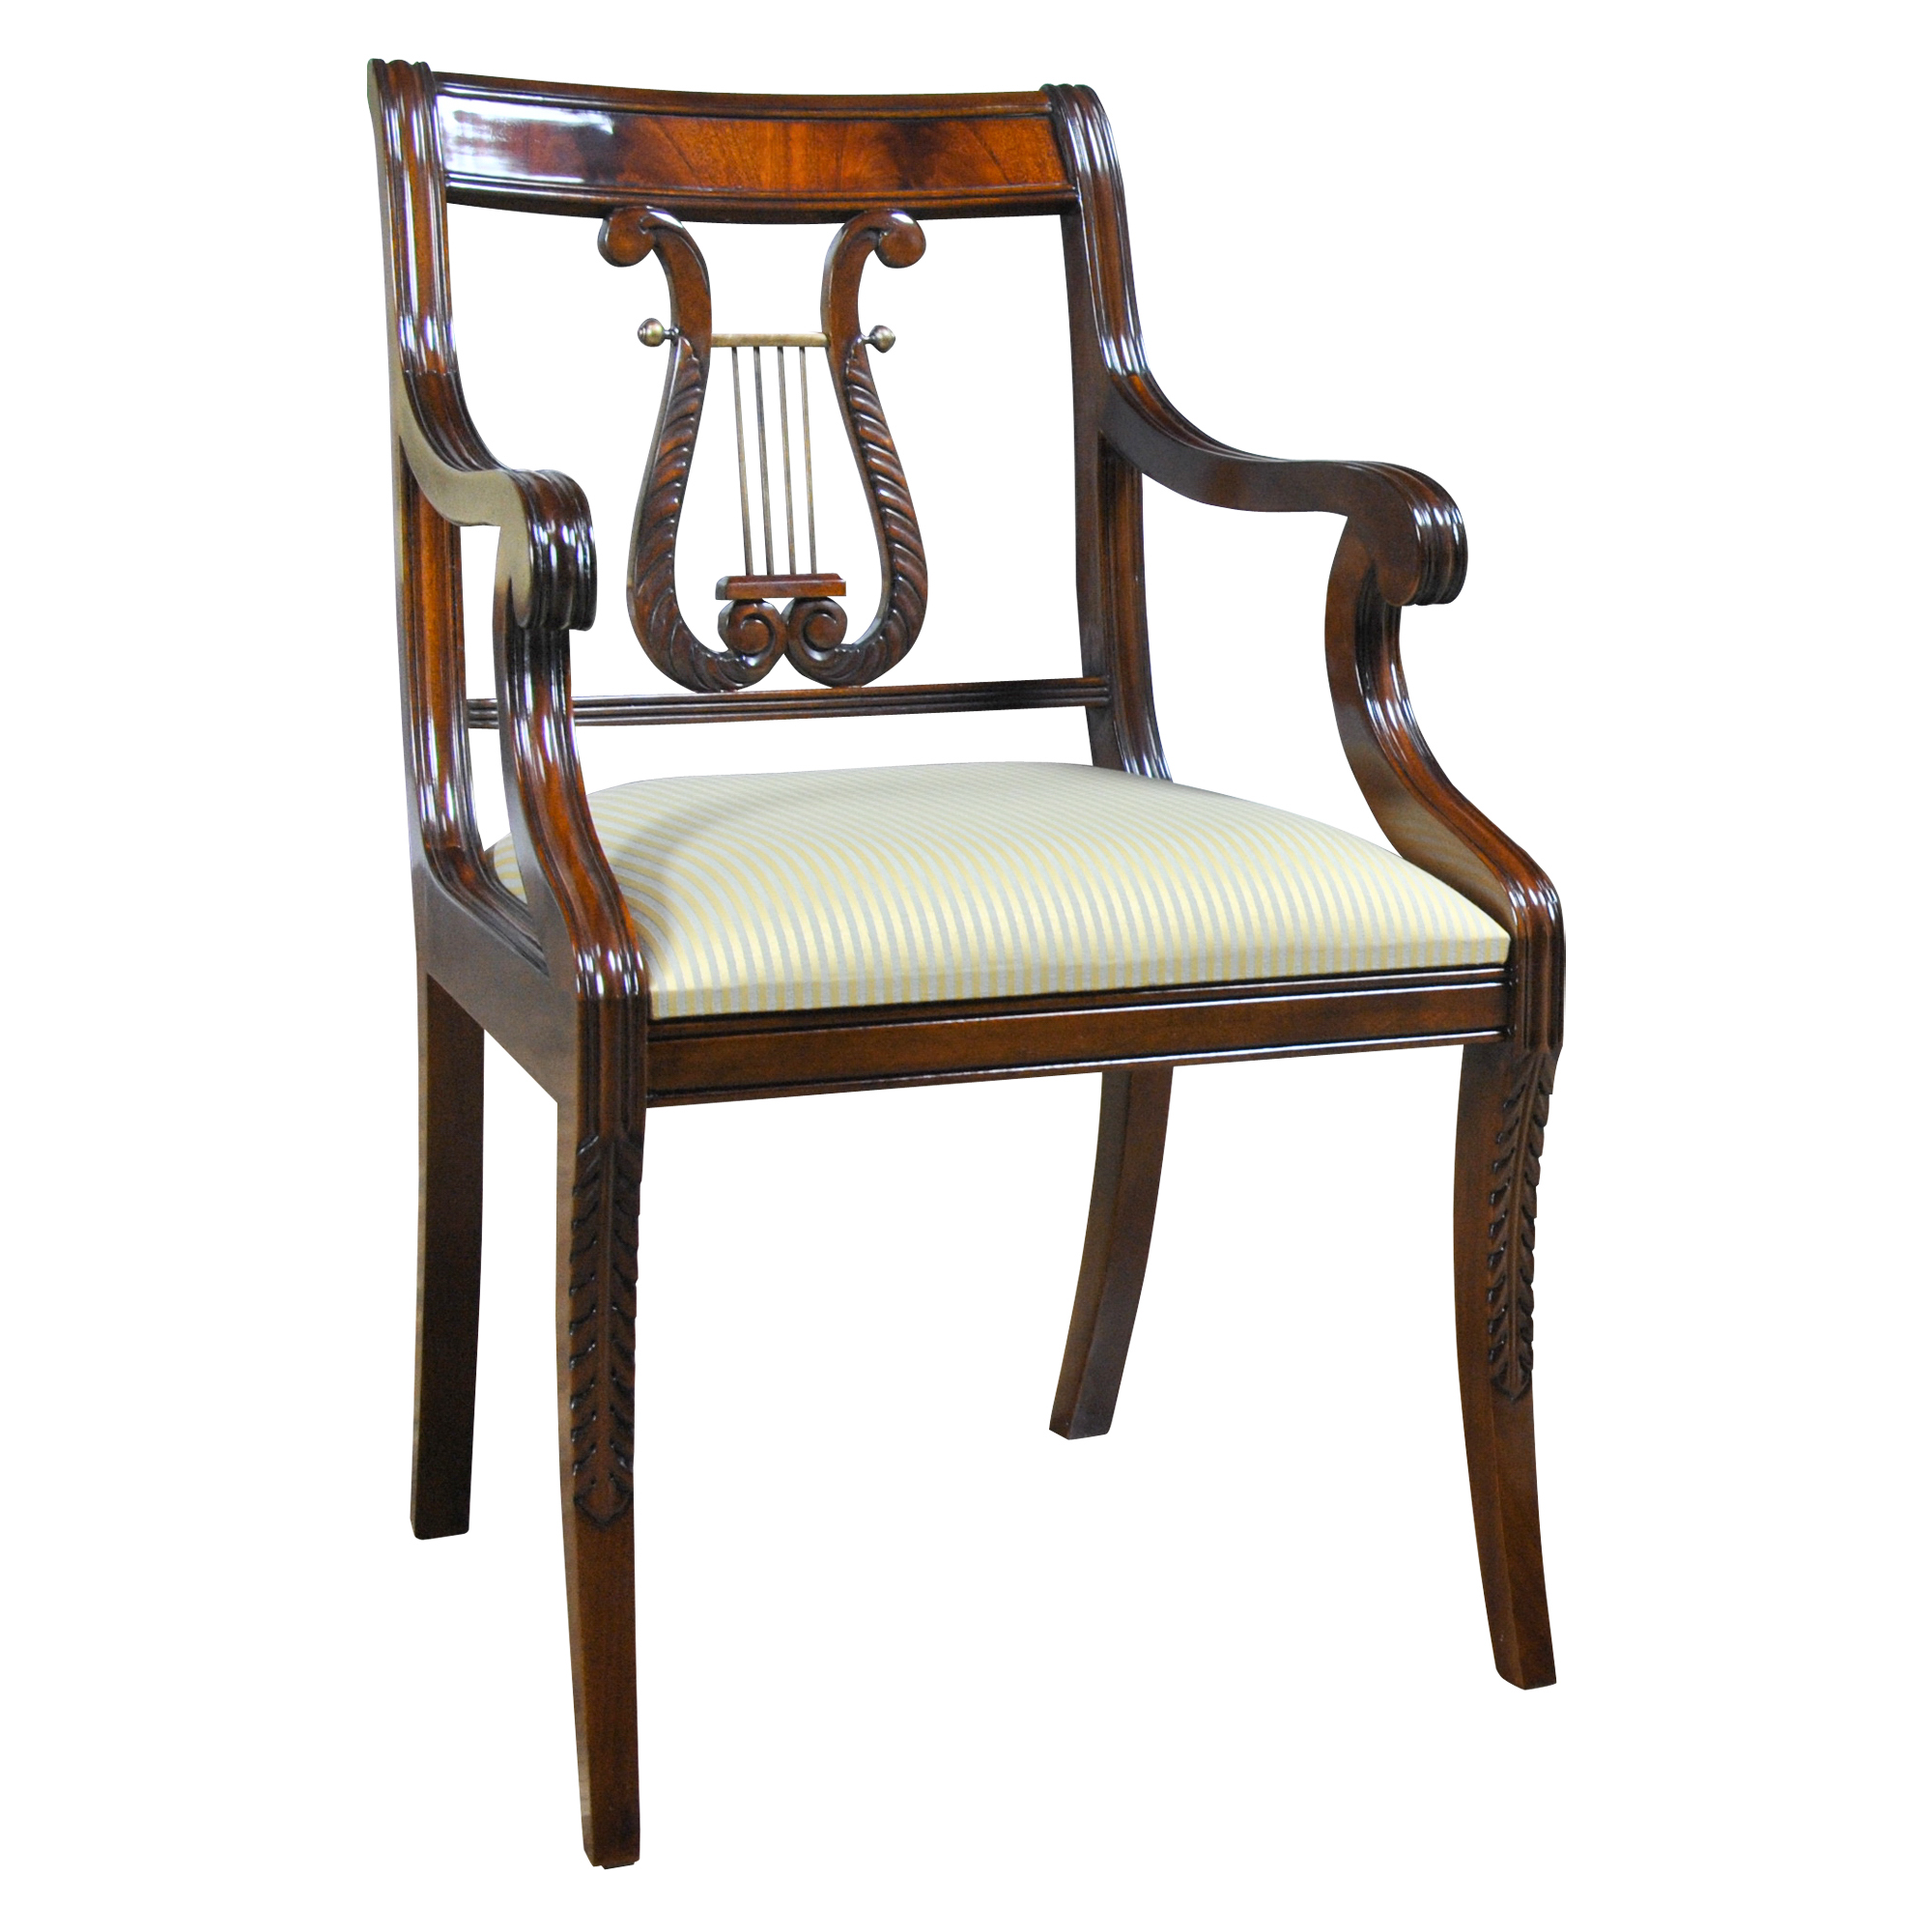 Ndrac008 for Dining room arm chairs